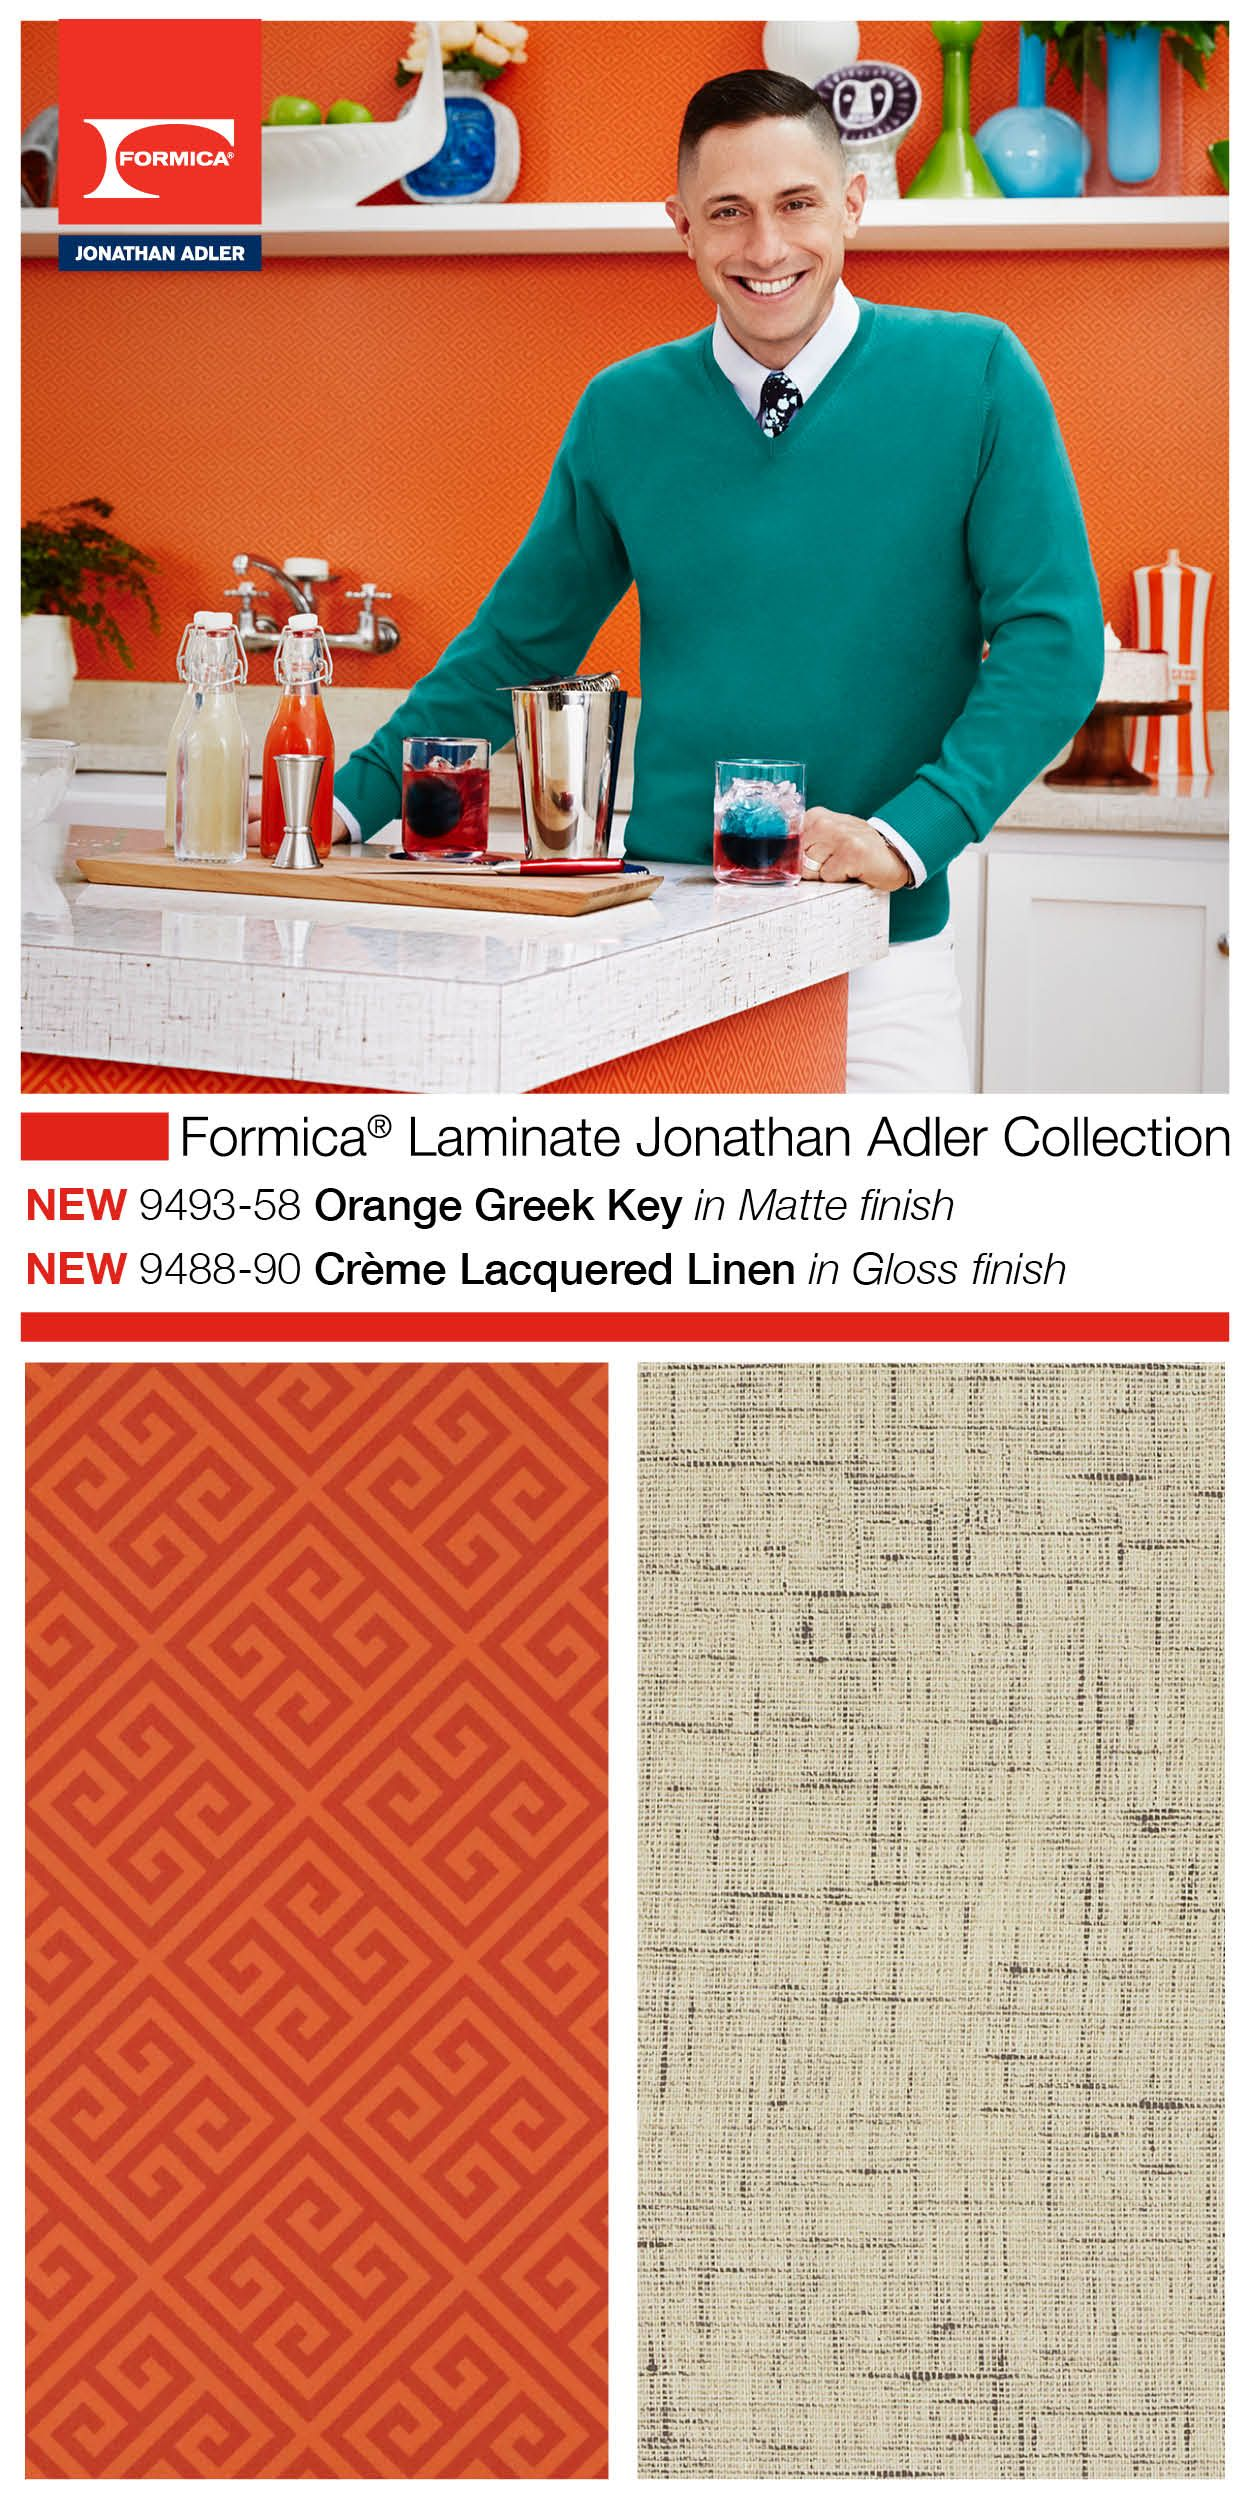 Formicagroup Introduced The Formica Laminate Jonathan Adler Collection At Kbis2015 As Part Of Their 2015 Residential Lau Formica Laminate Formica Laminate